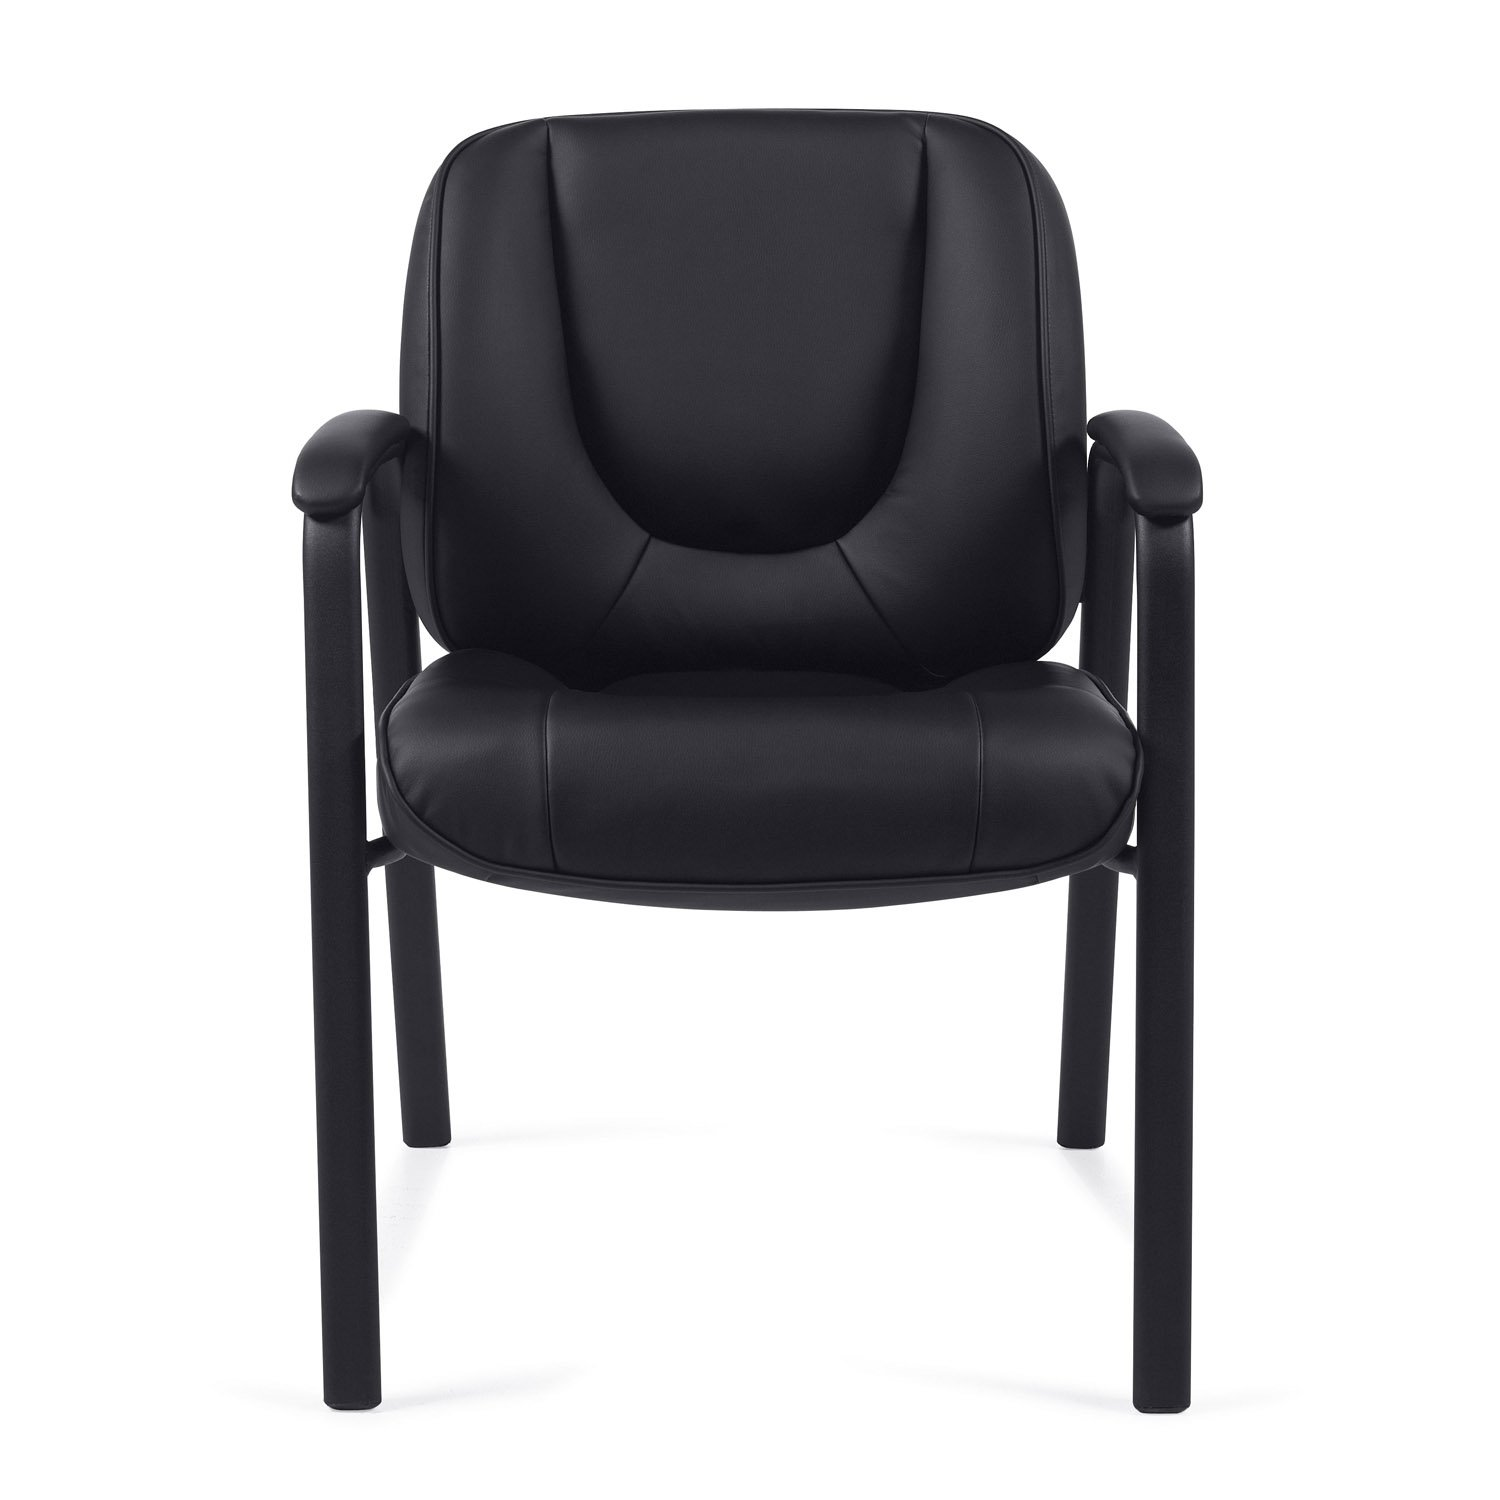 Connected waiting room chairs - Amazon Com Waiting Room Chairs Or Office Guest Chairs Otg3915b Office Products